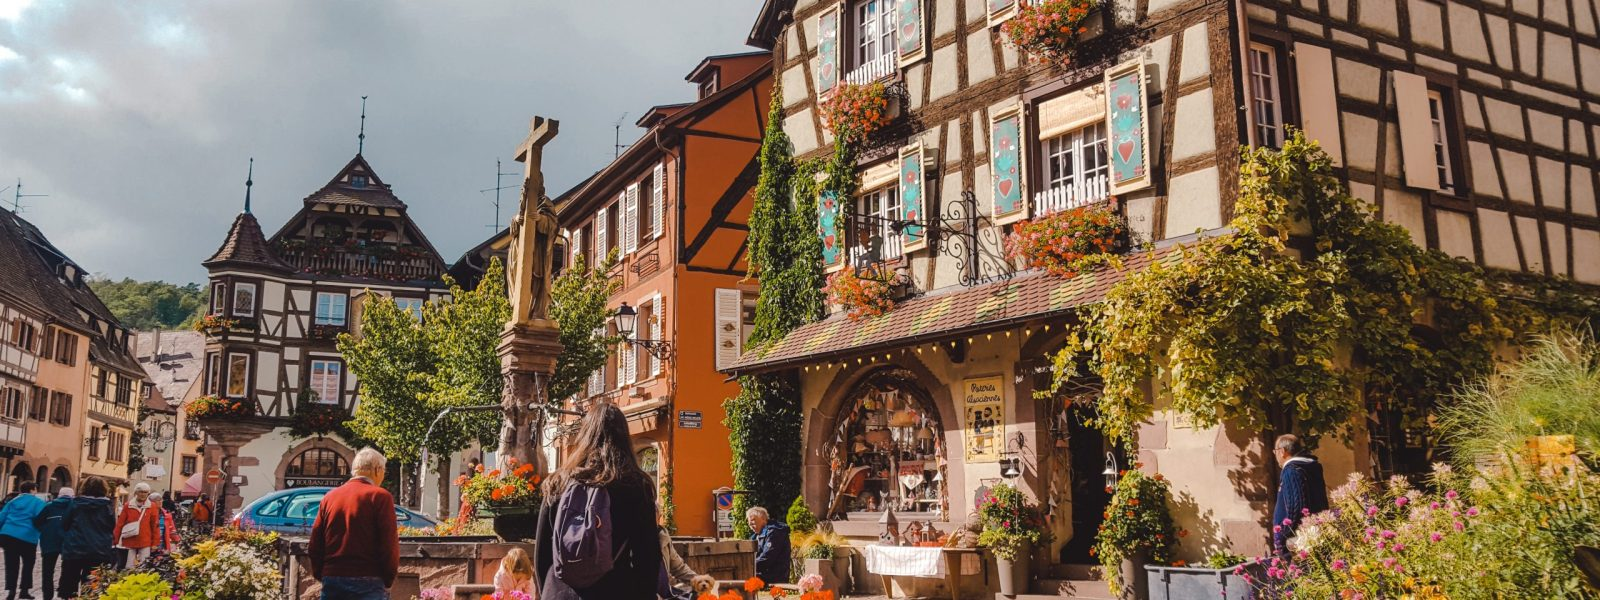 A Beauty and the Beast roadtrip at the Alsace